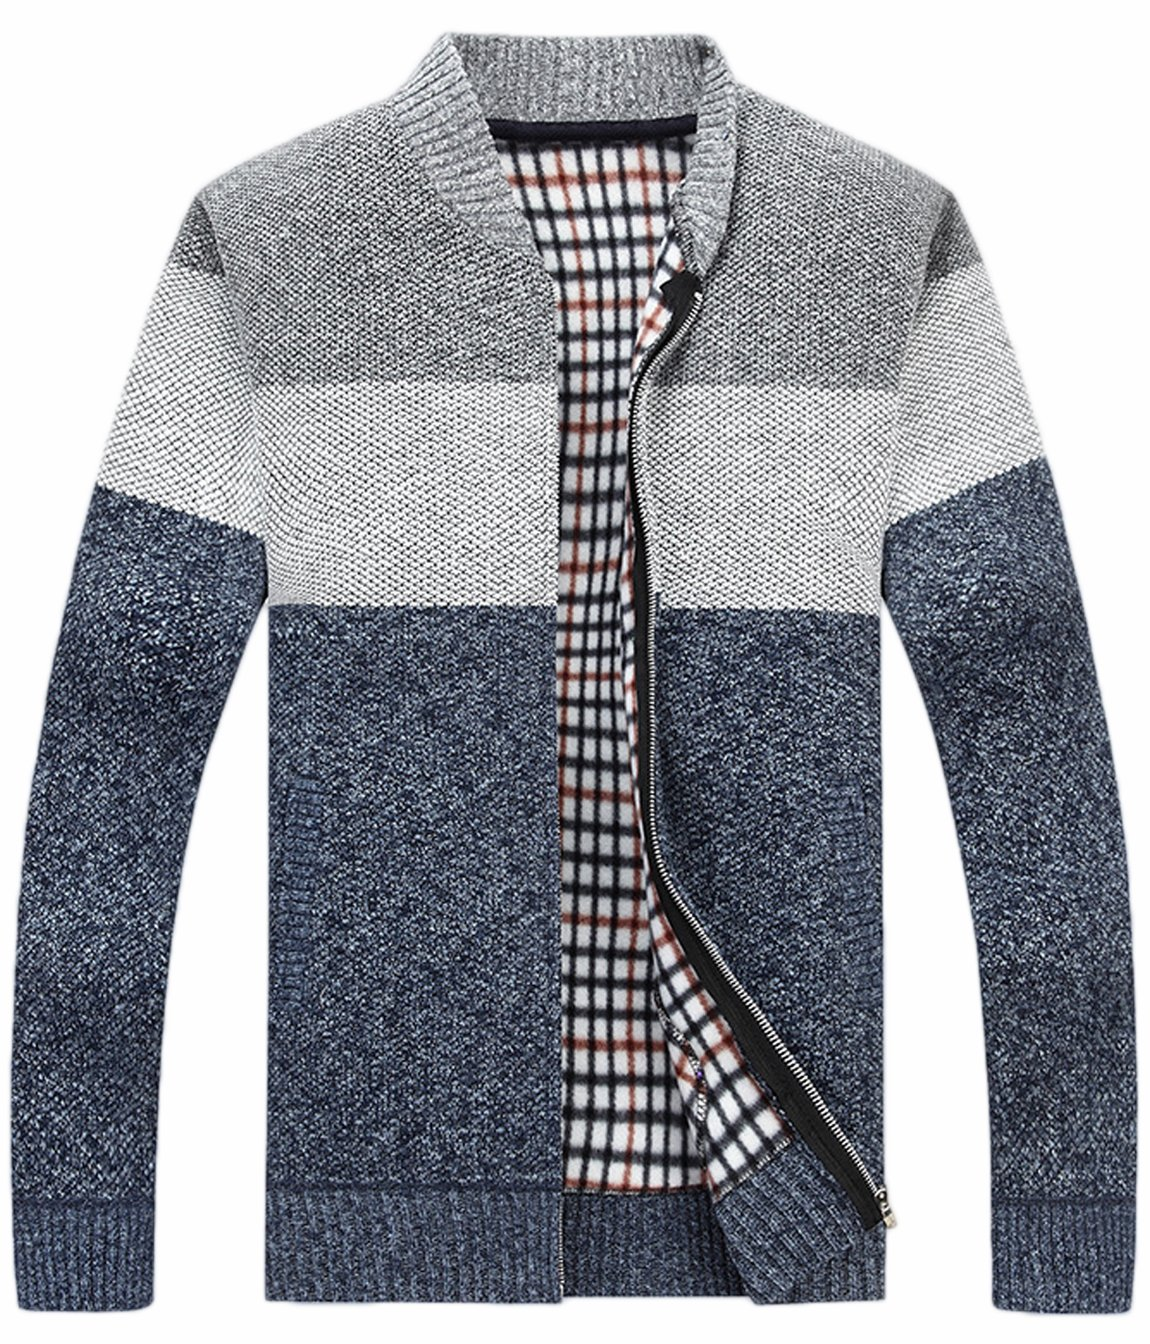 HOW'ON Men's Casual Wide Stripes Zipper Knitted Cardigan Sweater Light Grey L